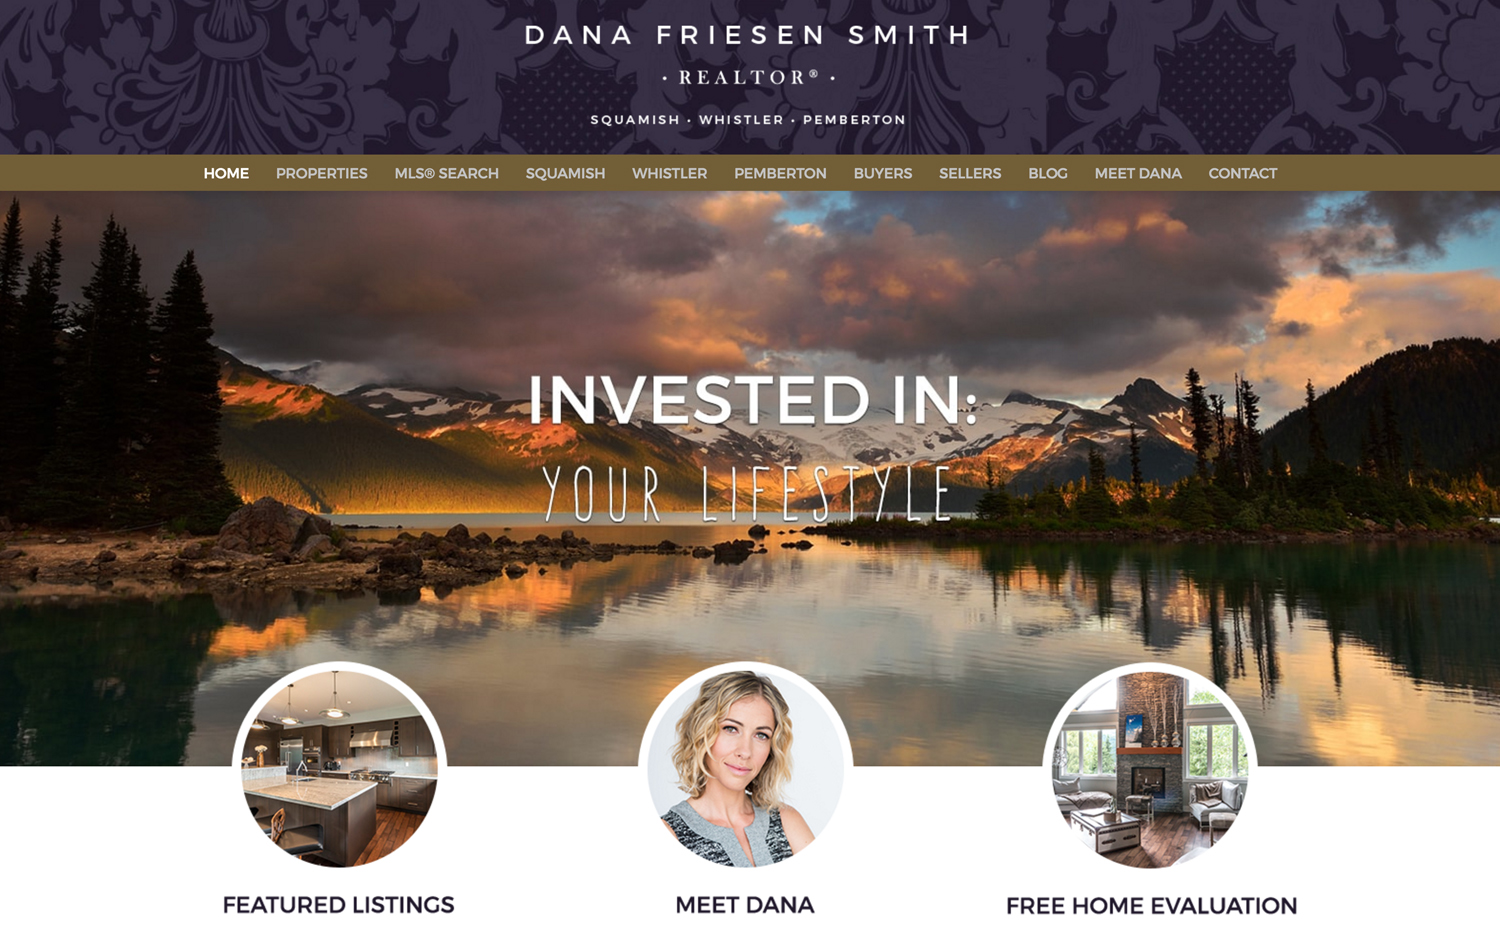 dana friesen smith real estate website screenshot